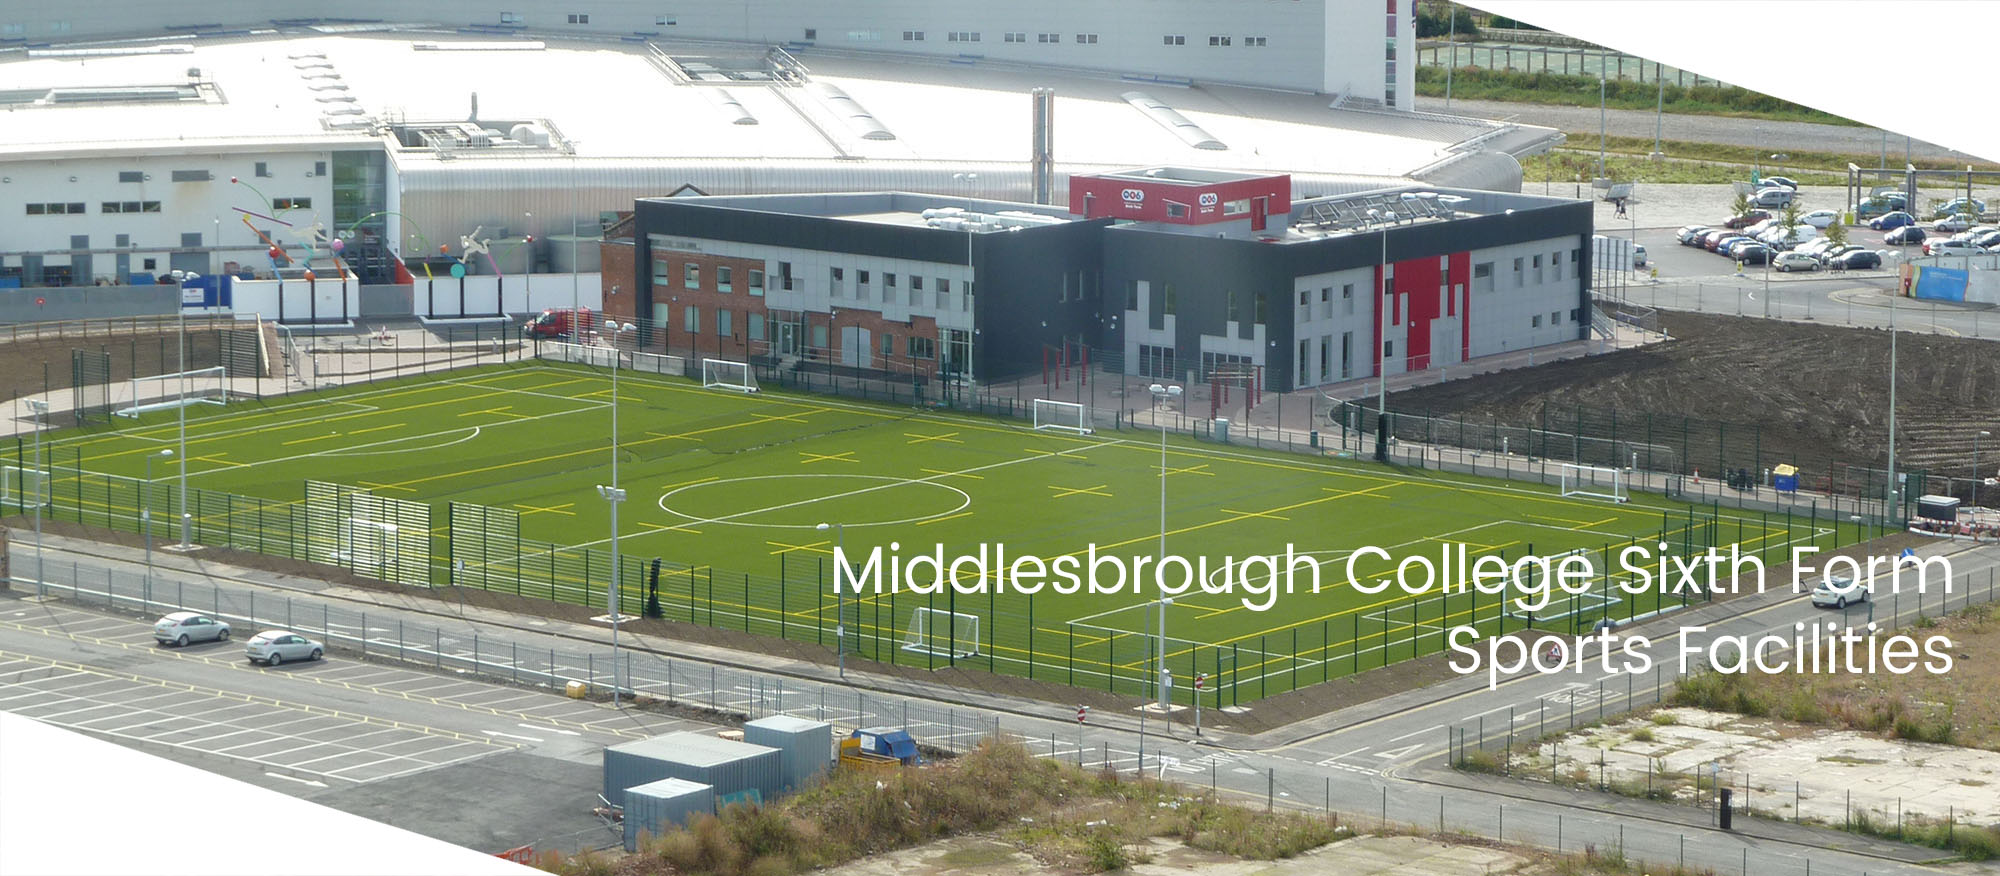 Niven Architects - Middlesbrough College Sixth Form Sports MC6.jpg